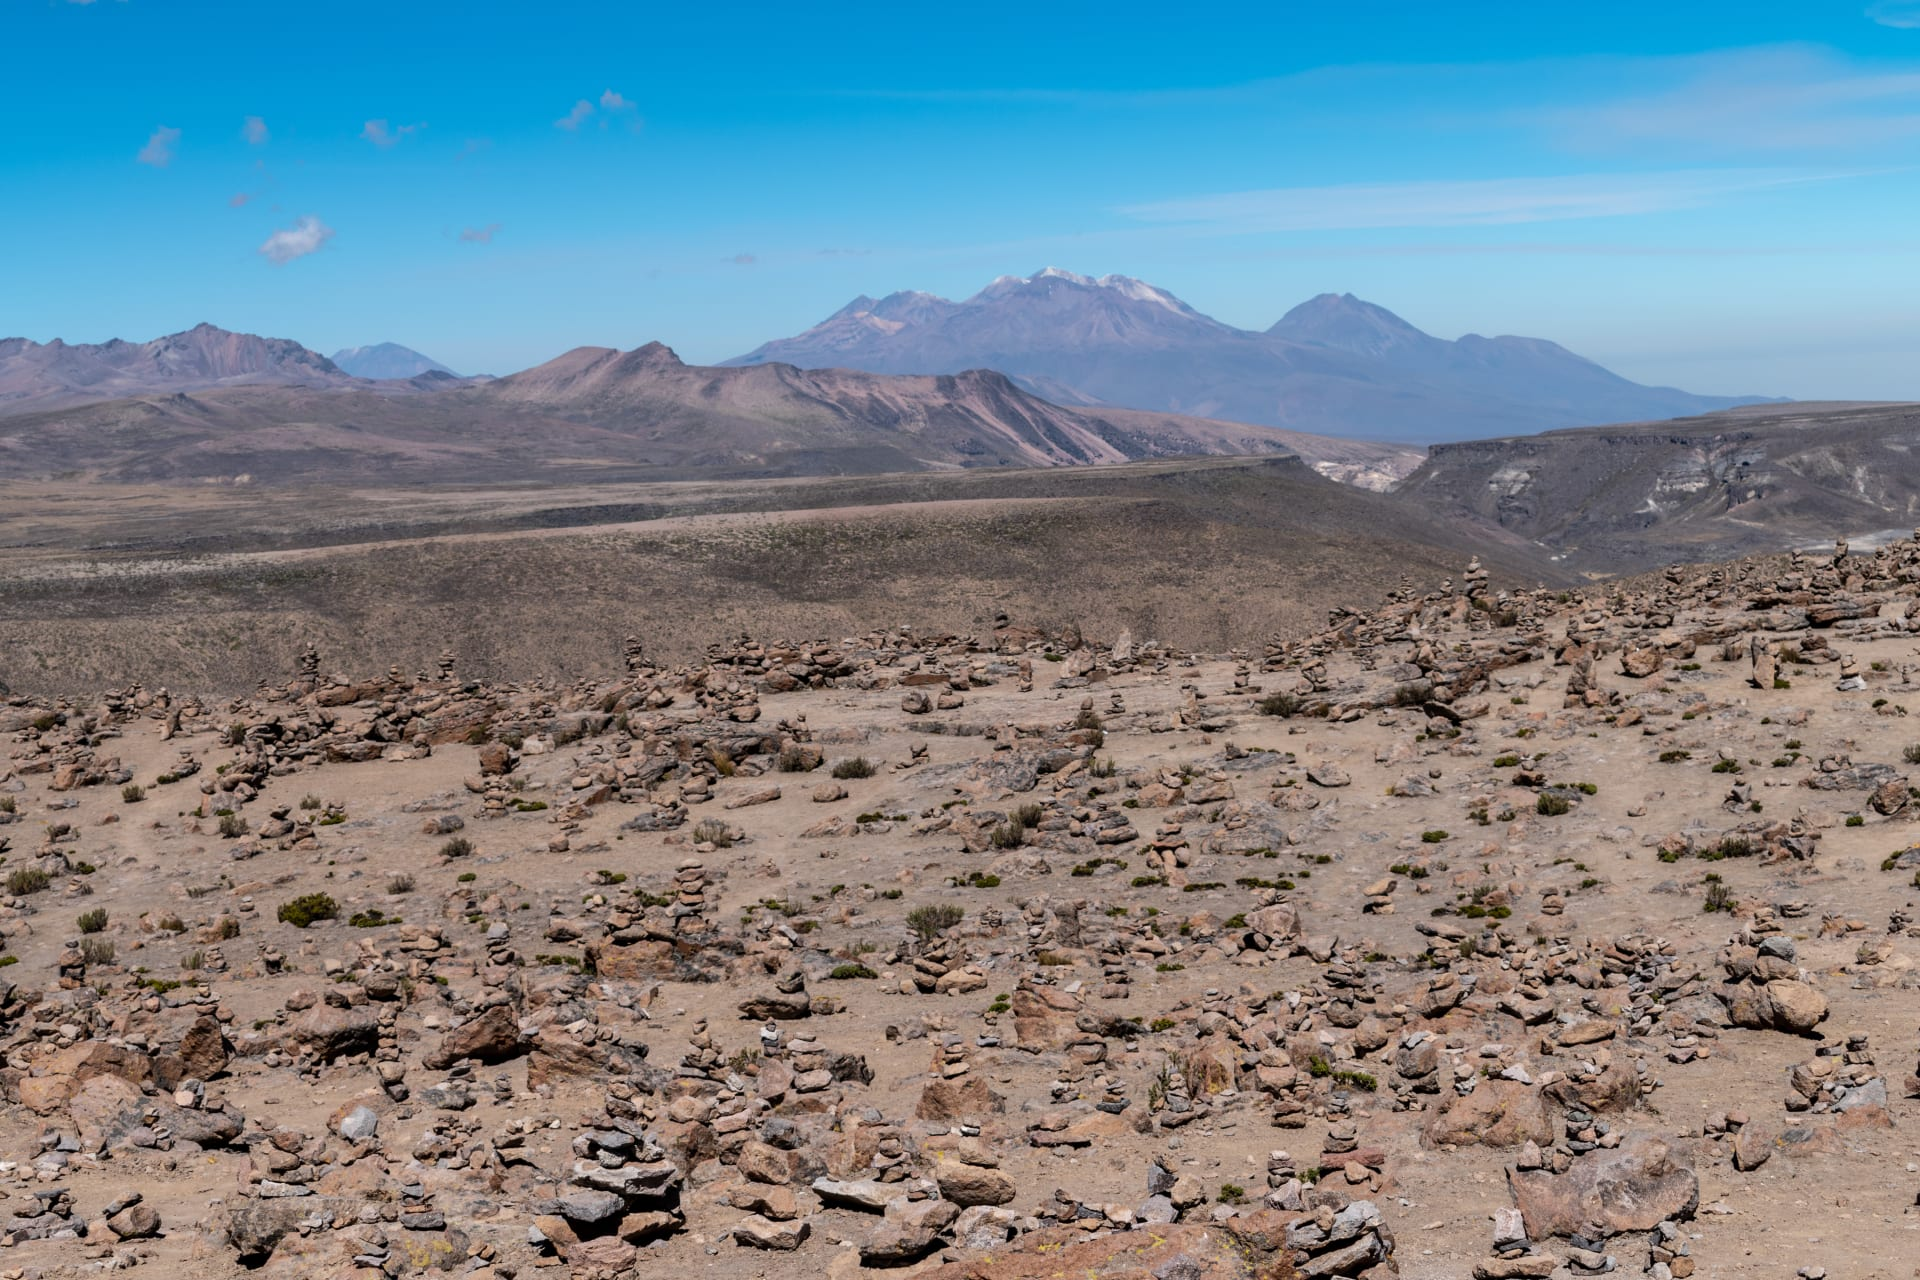 Arequipa - Western Mountain Ranges of Central Andes - 4910 Meters above Sea Level or 16108 Feet.